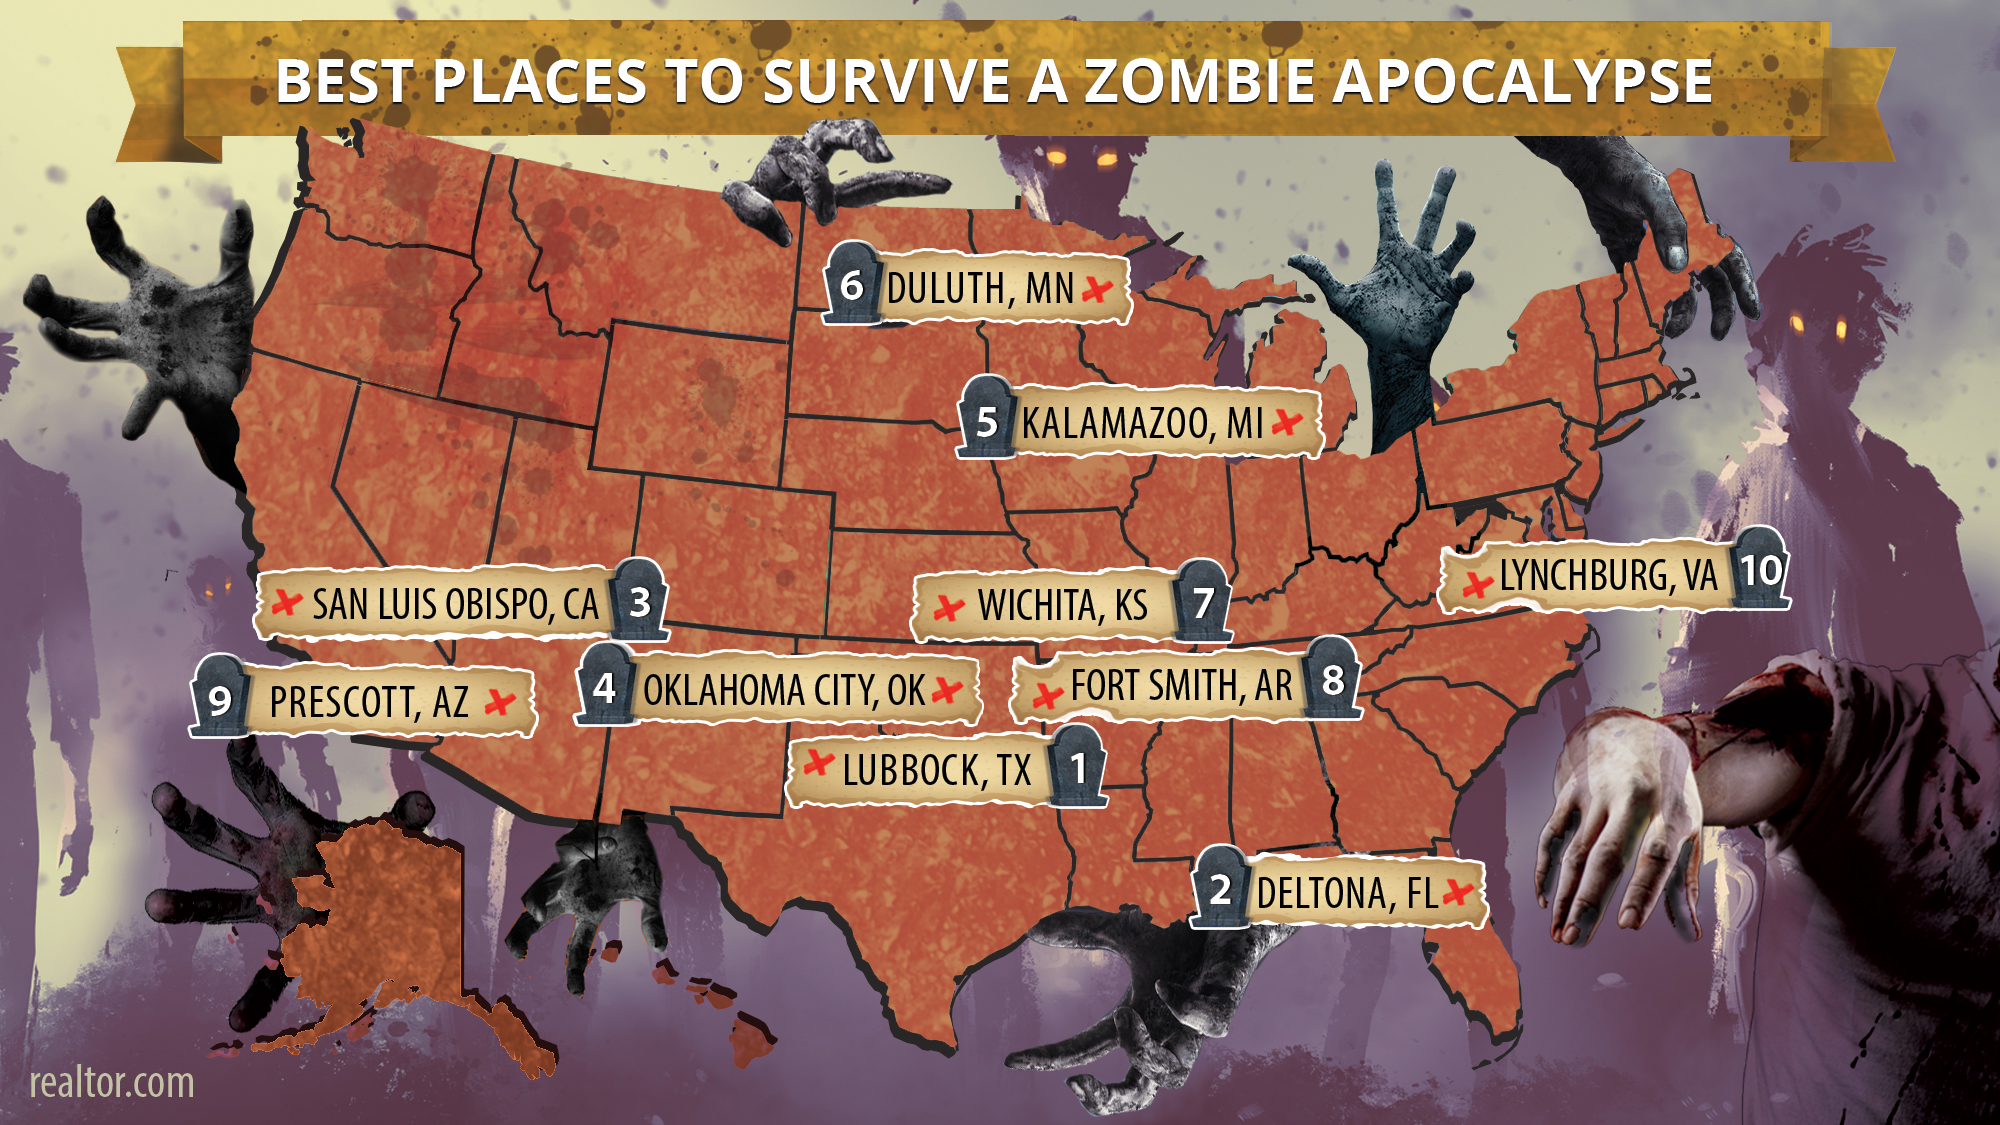 Lubbock Named Best Able to Survive a Zombie Apocalypse on